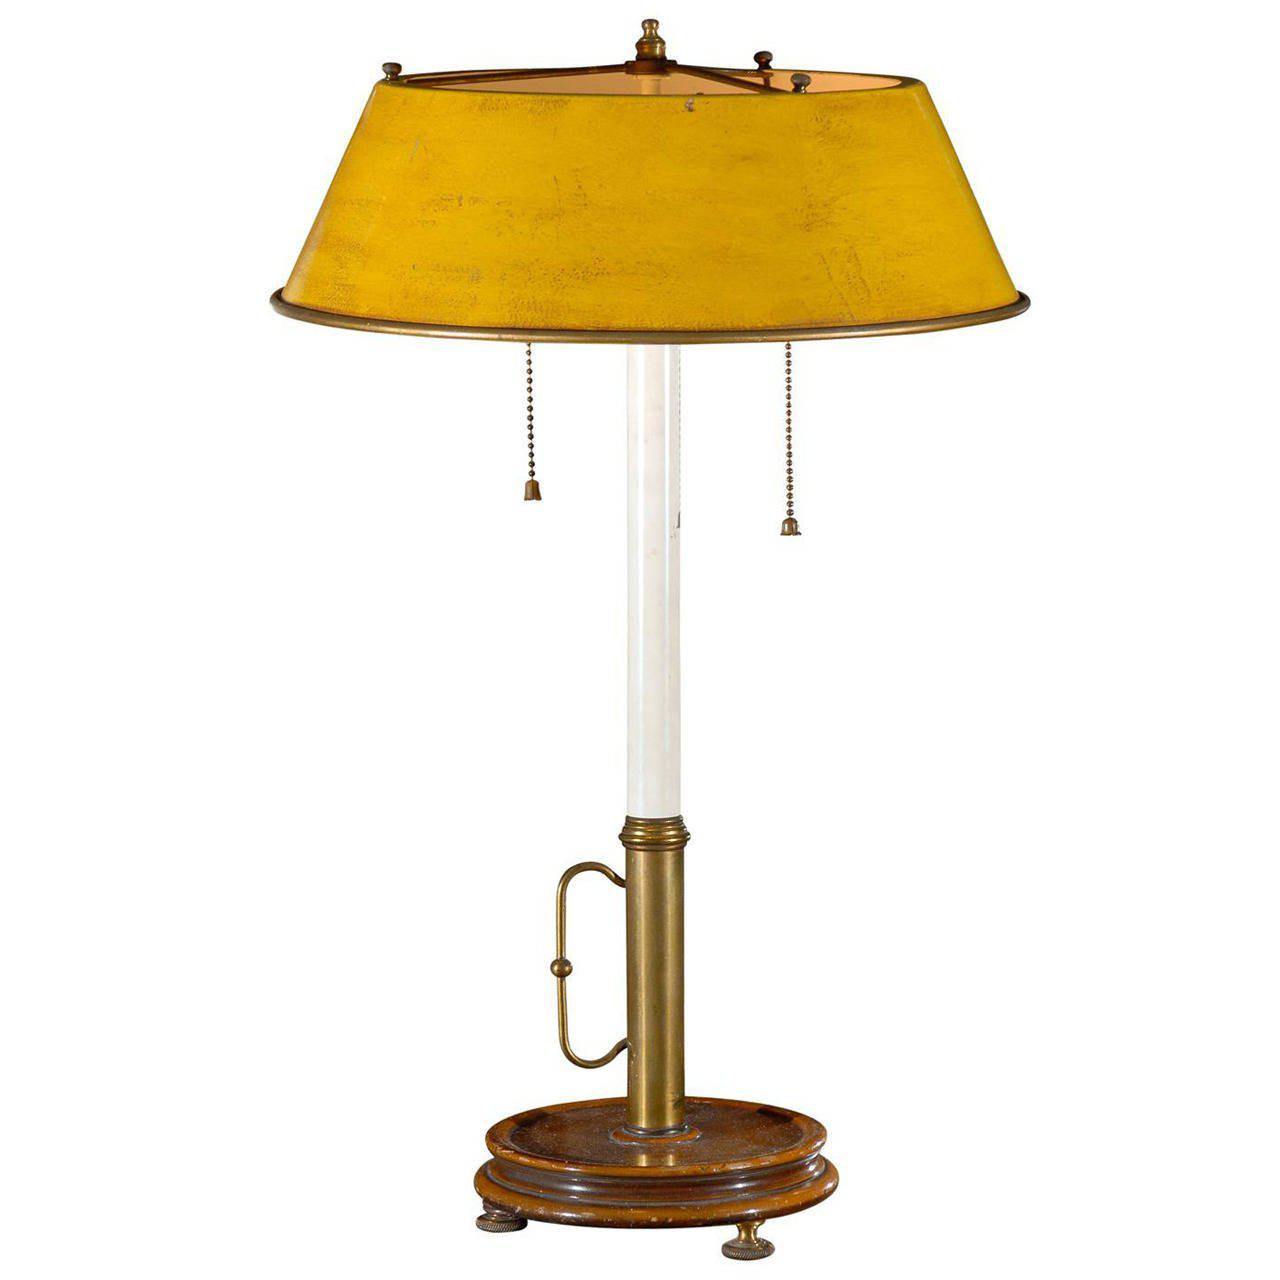 Image of: Candlestick Lamps Walmart